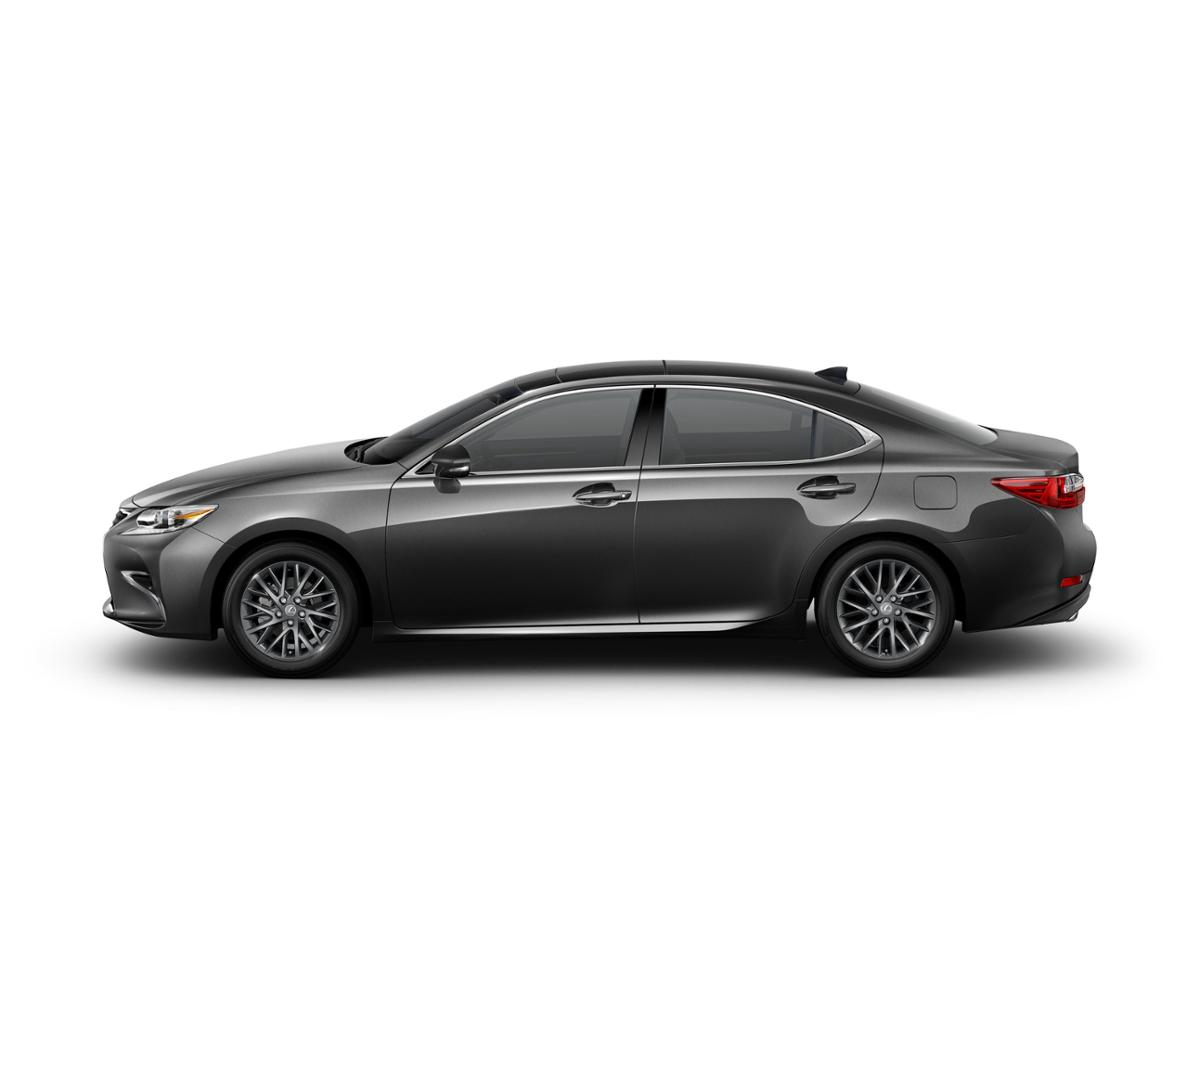 2018 Lexus ES 350 Vehicle Photo in Dallas, TX 75209